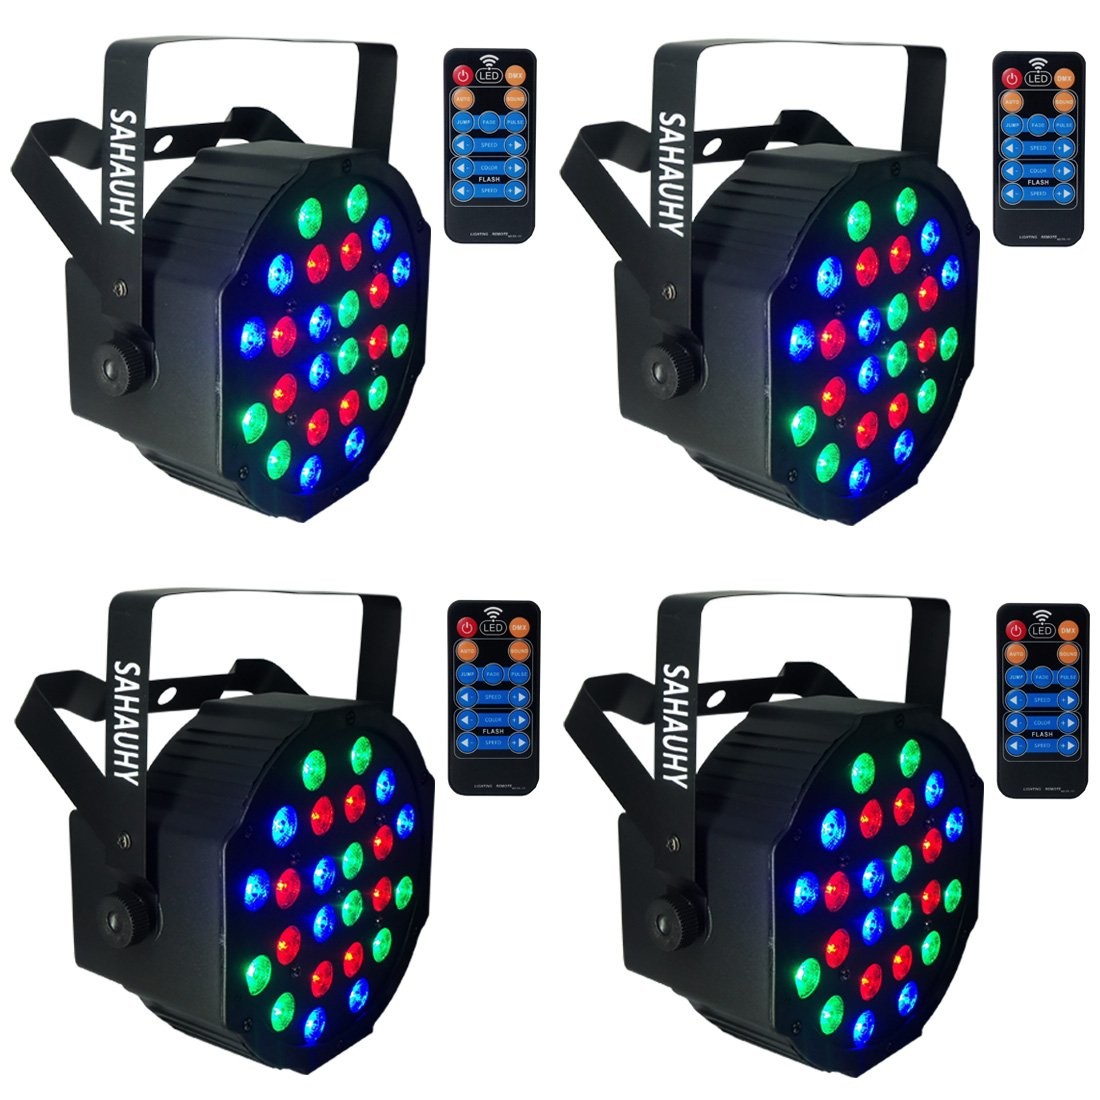 Stage Light,2018 SAHAUHY Bright 24LEDs RGB DMX Par Lights for Party Wedding Birthday Halloween Christmas with Remote(24 Leds Stage lights)